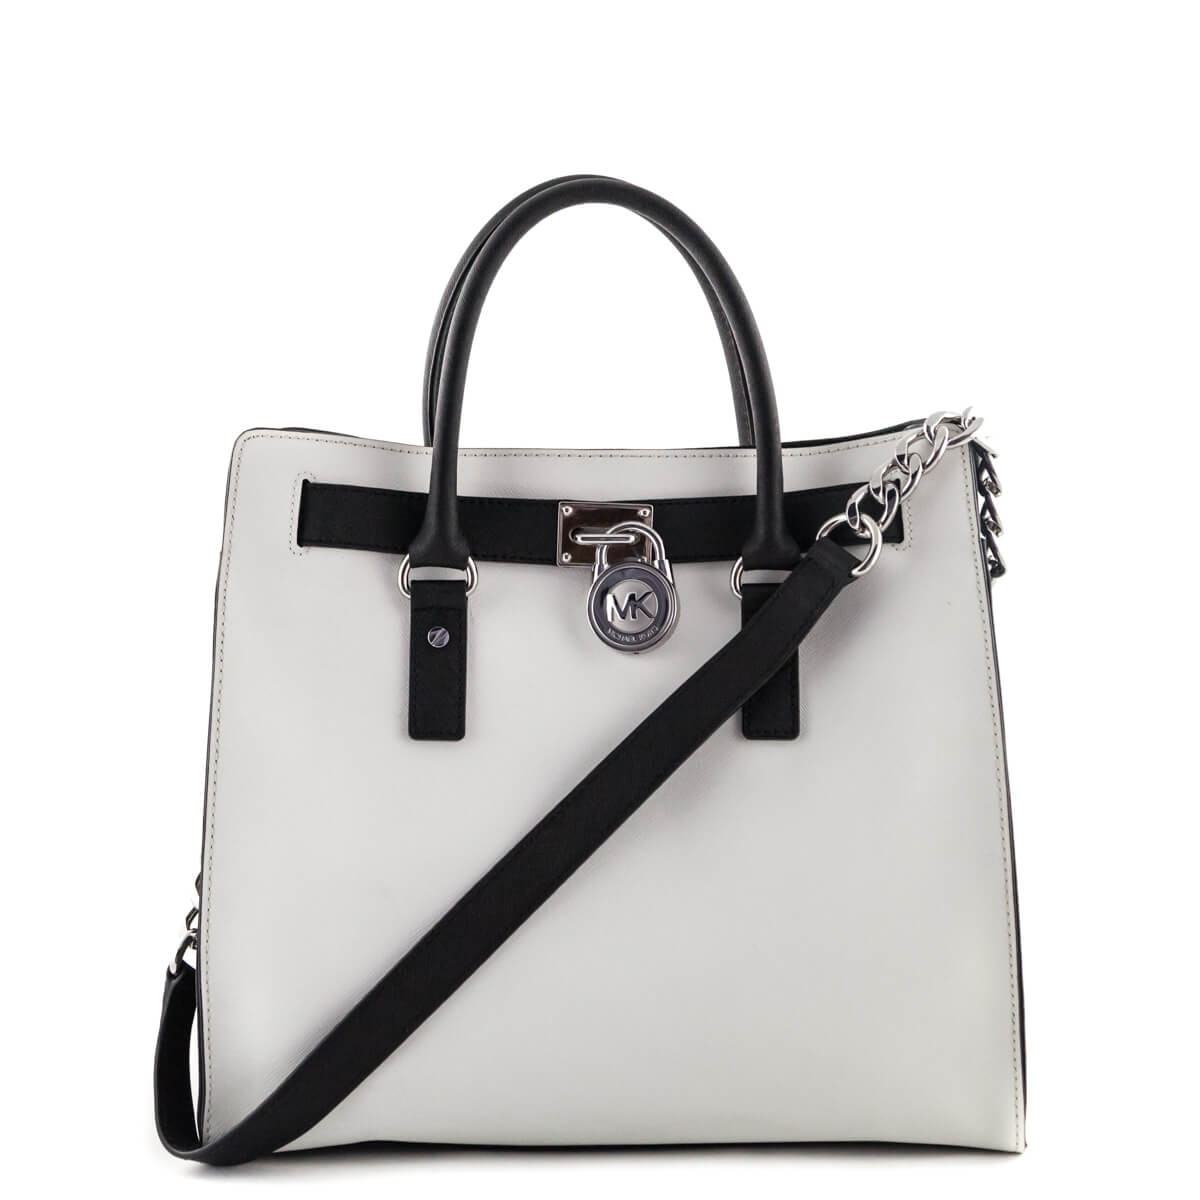 Michael Kors Black   White Saffiano Hamilton Tote - LOVE that BAG -  Preowned Authentic Designer ... e0276b2a6d980